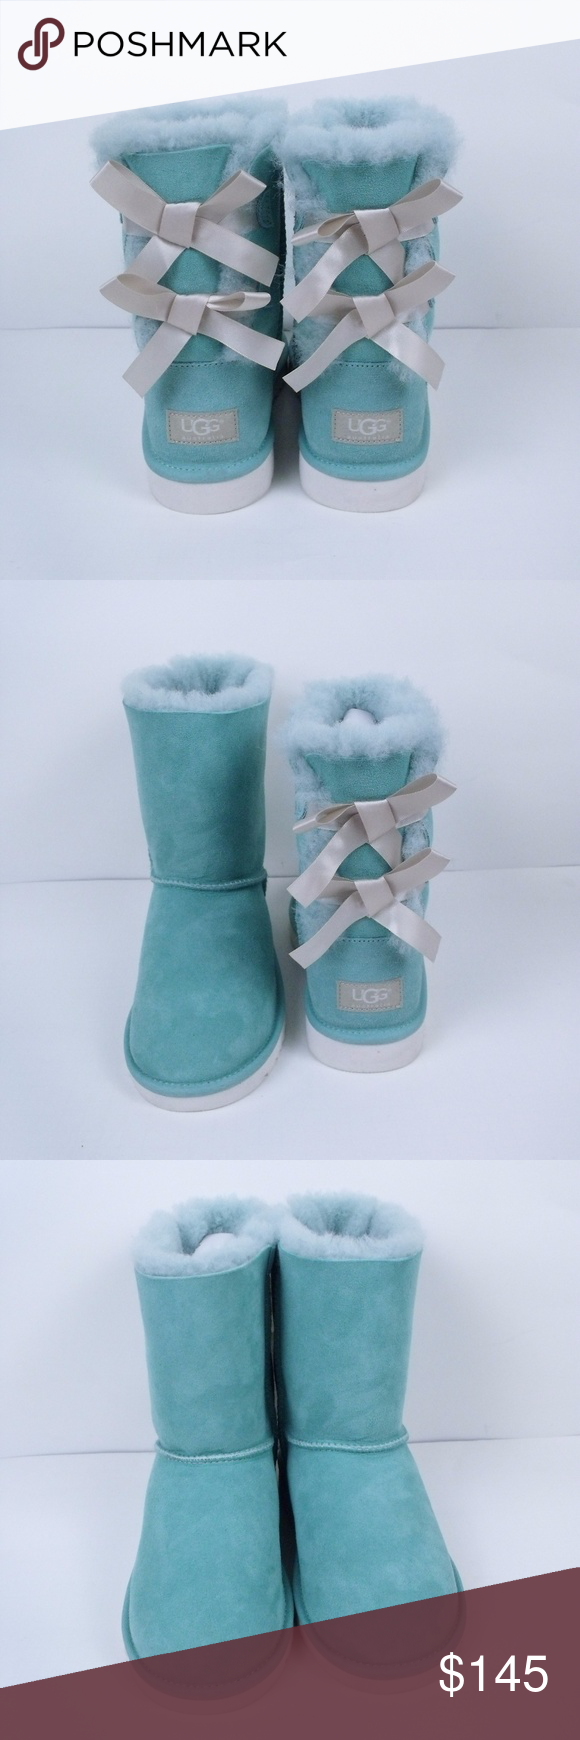 670be898740 UGG Tiffany Blue Bailey Bow Boots Womens 6.5 ~ UGG Bailey Bow Boots ...